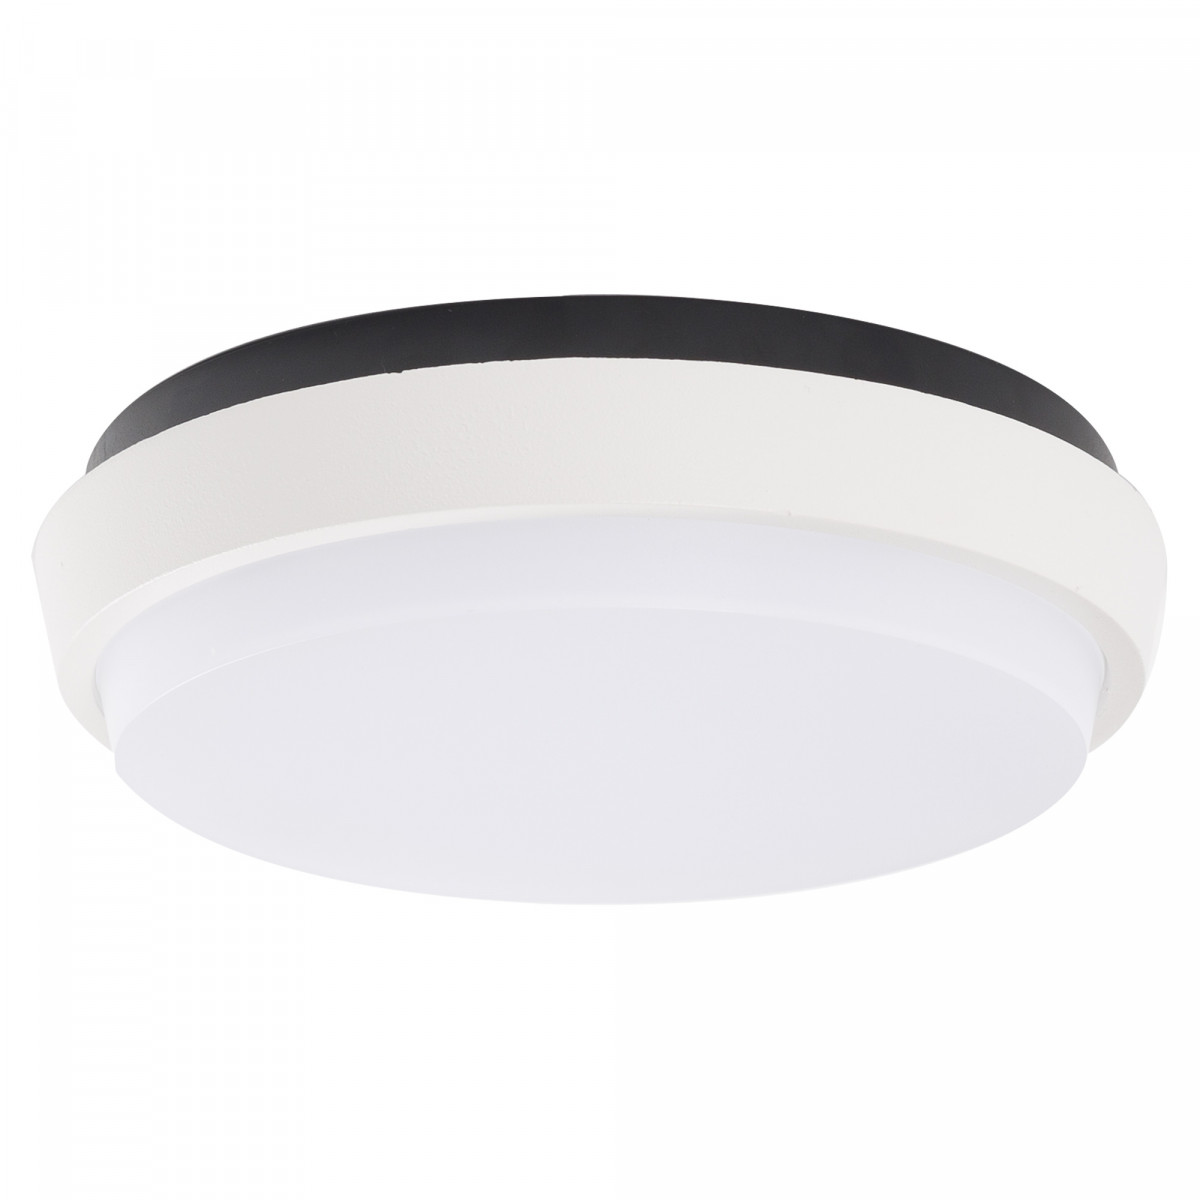 Buitenlamp Buitenlamp Stealth LED round